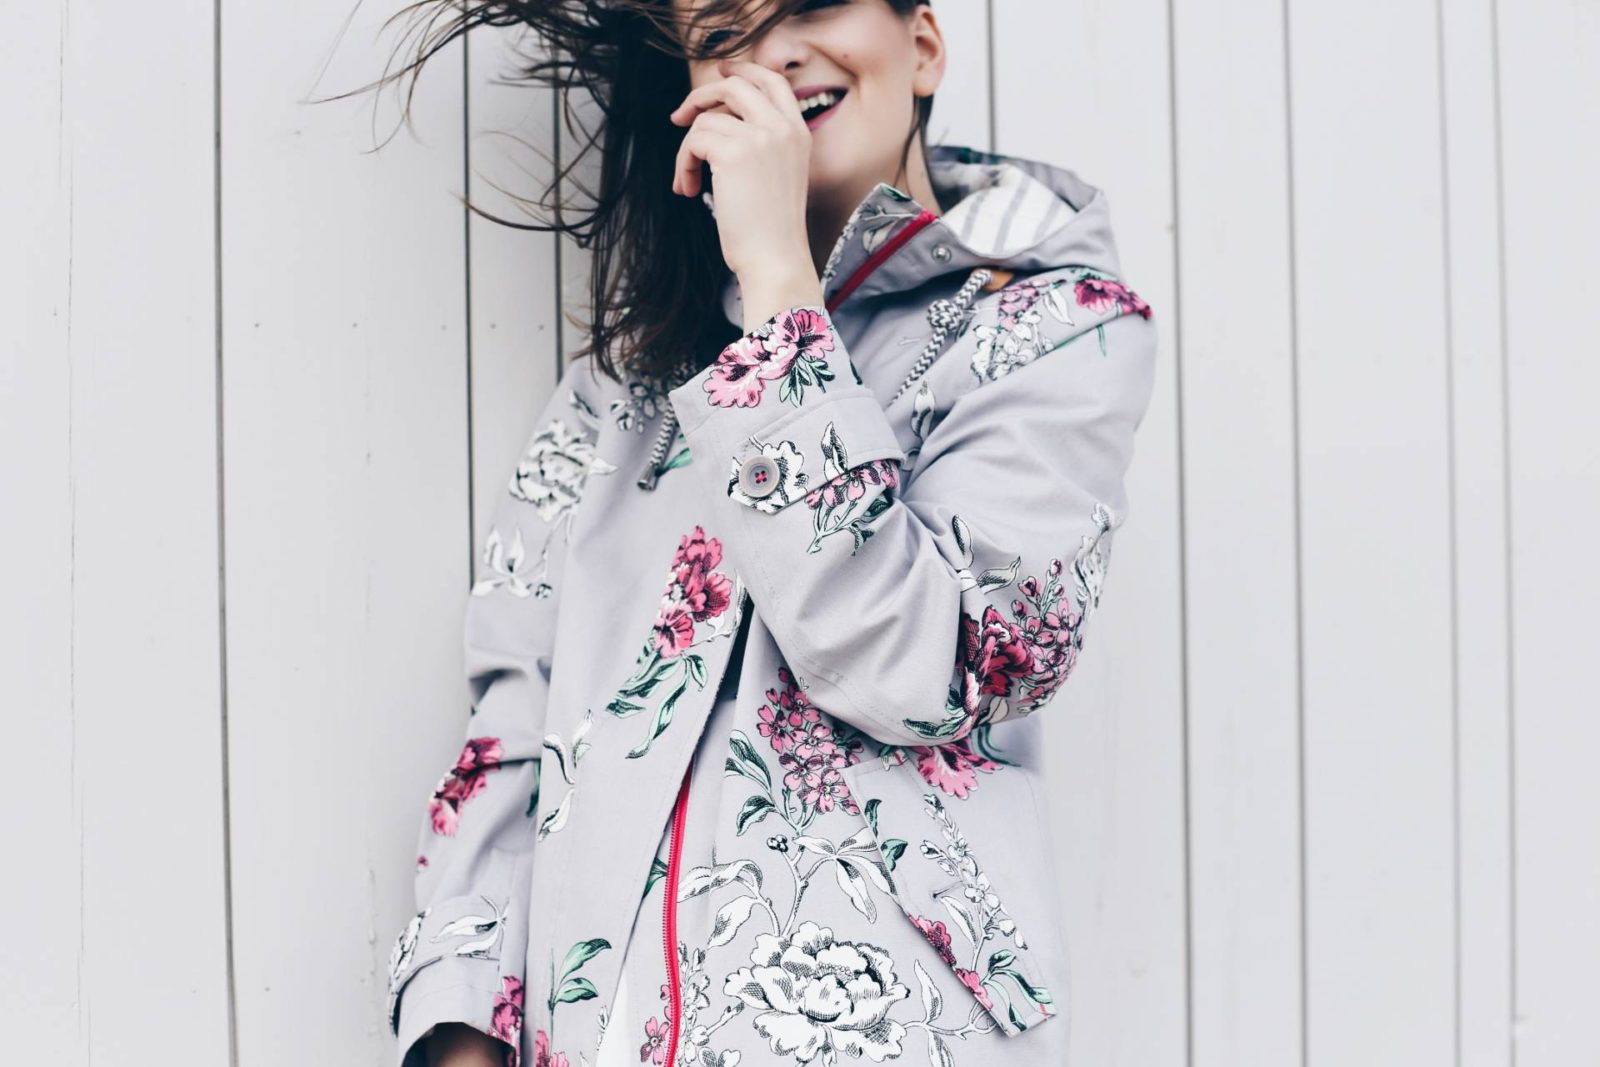 Dreaming of Chanel wears Joules SS16 floral rain coat in Watergate Bay, Cornwall